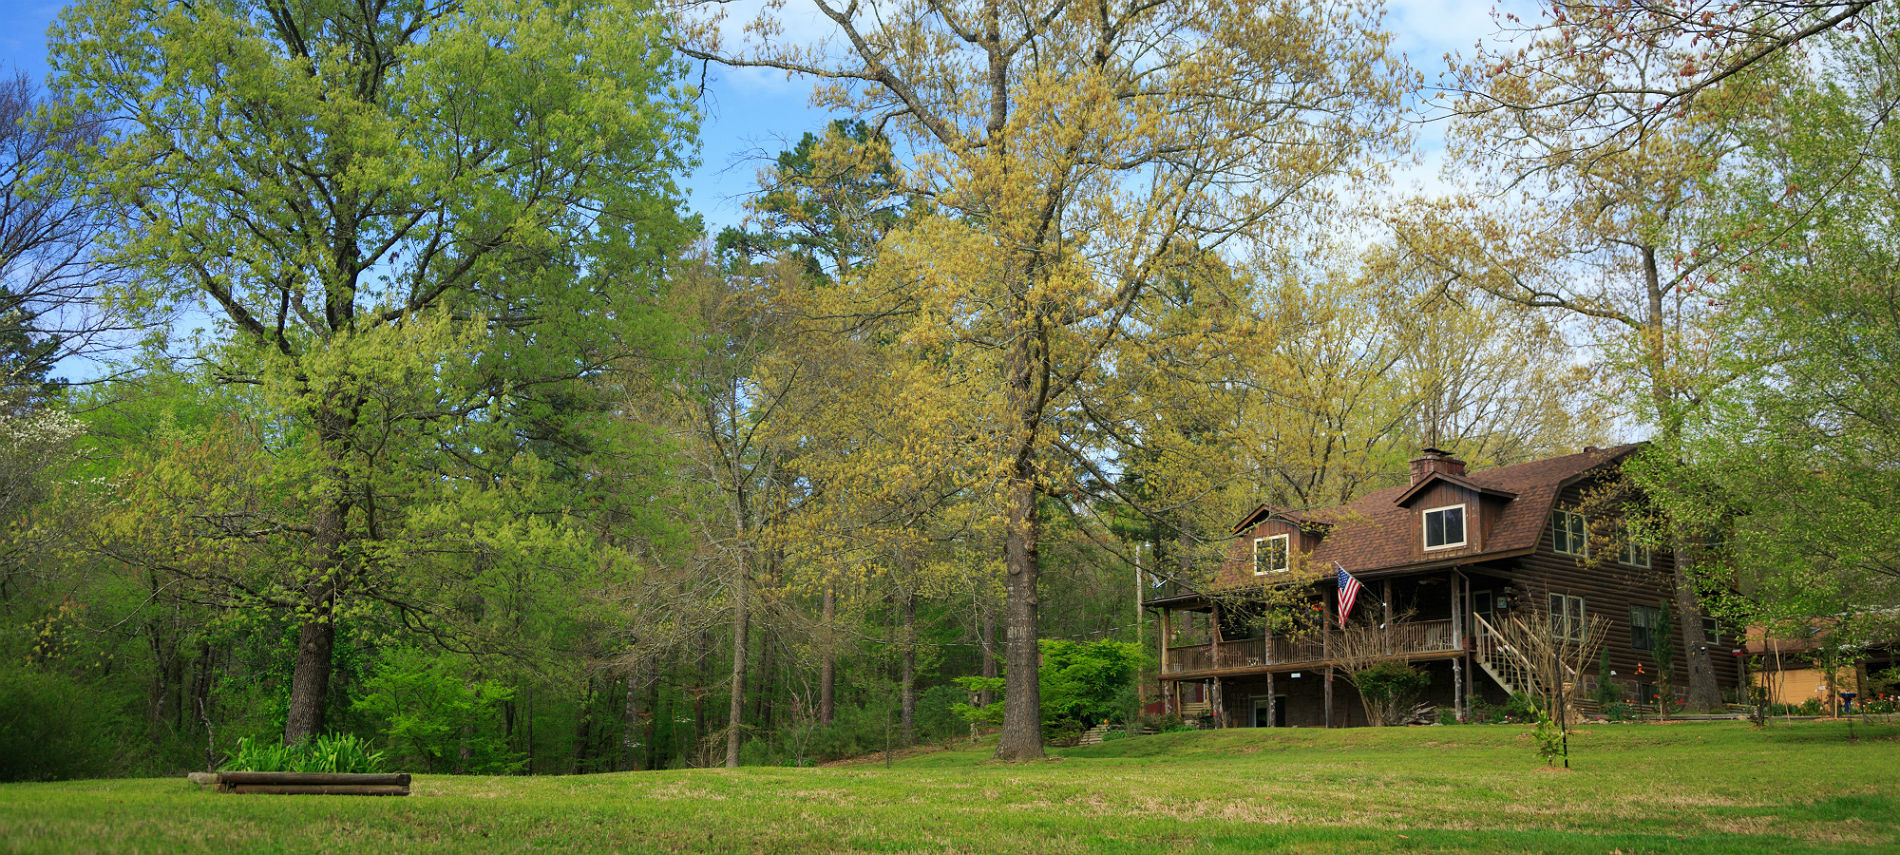 Exterior of the inn with a large outdoor porch and log construction on an expansive grassy field with a forest of mature trees surrounding.